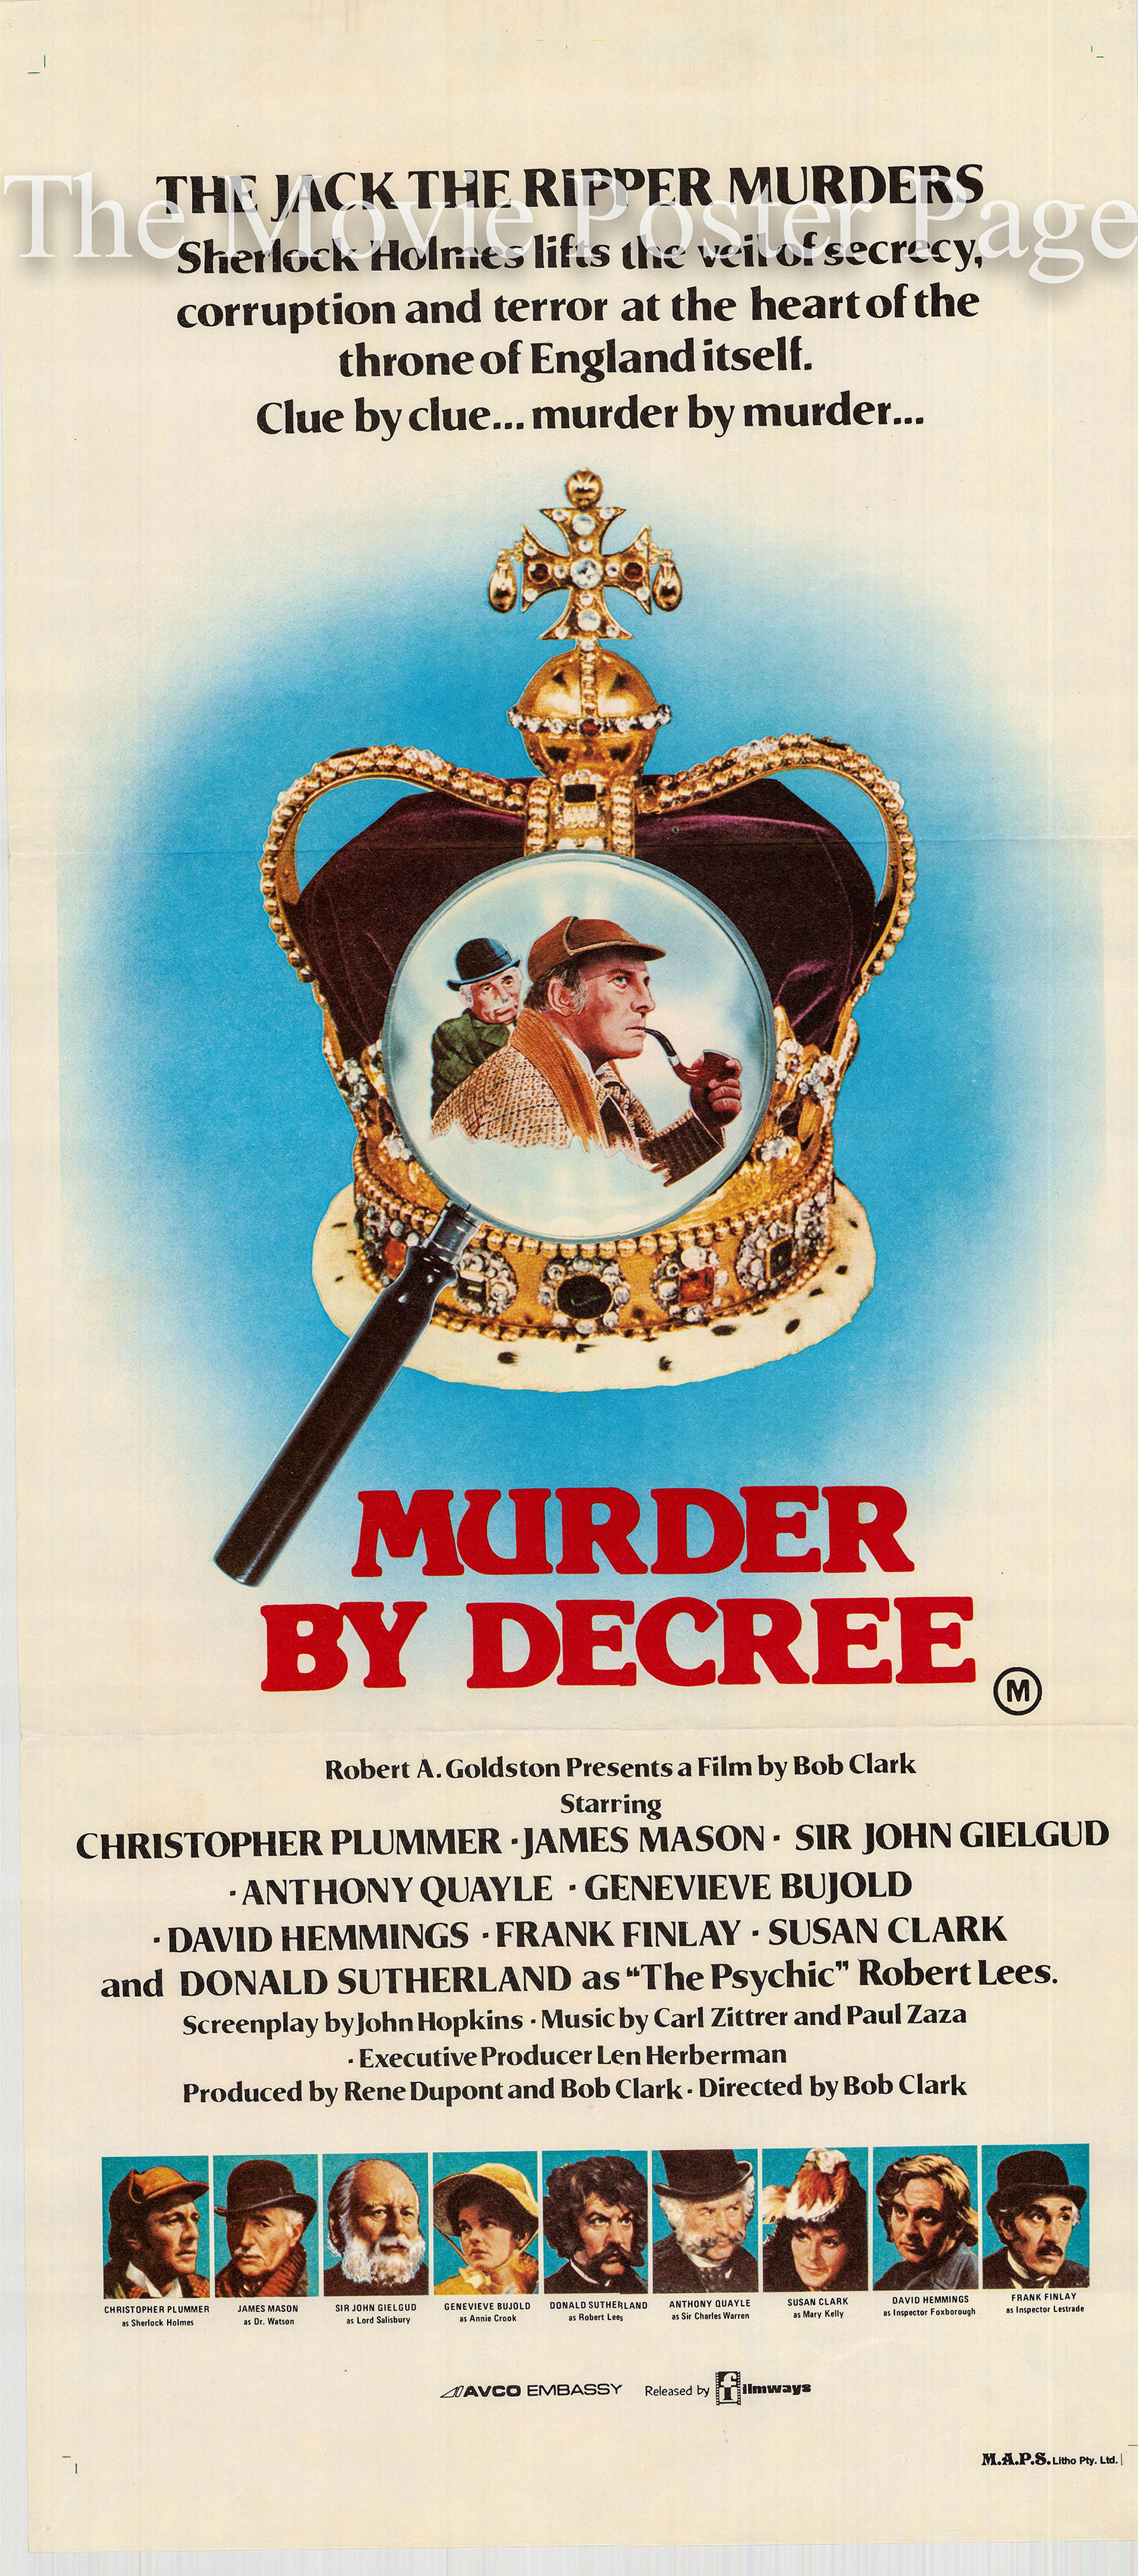 Pictured is an Australian daybil poster printed to promote the 1979 Bob Clark film Murder By Decree starring Christopher Plummer.